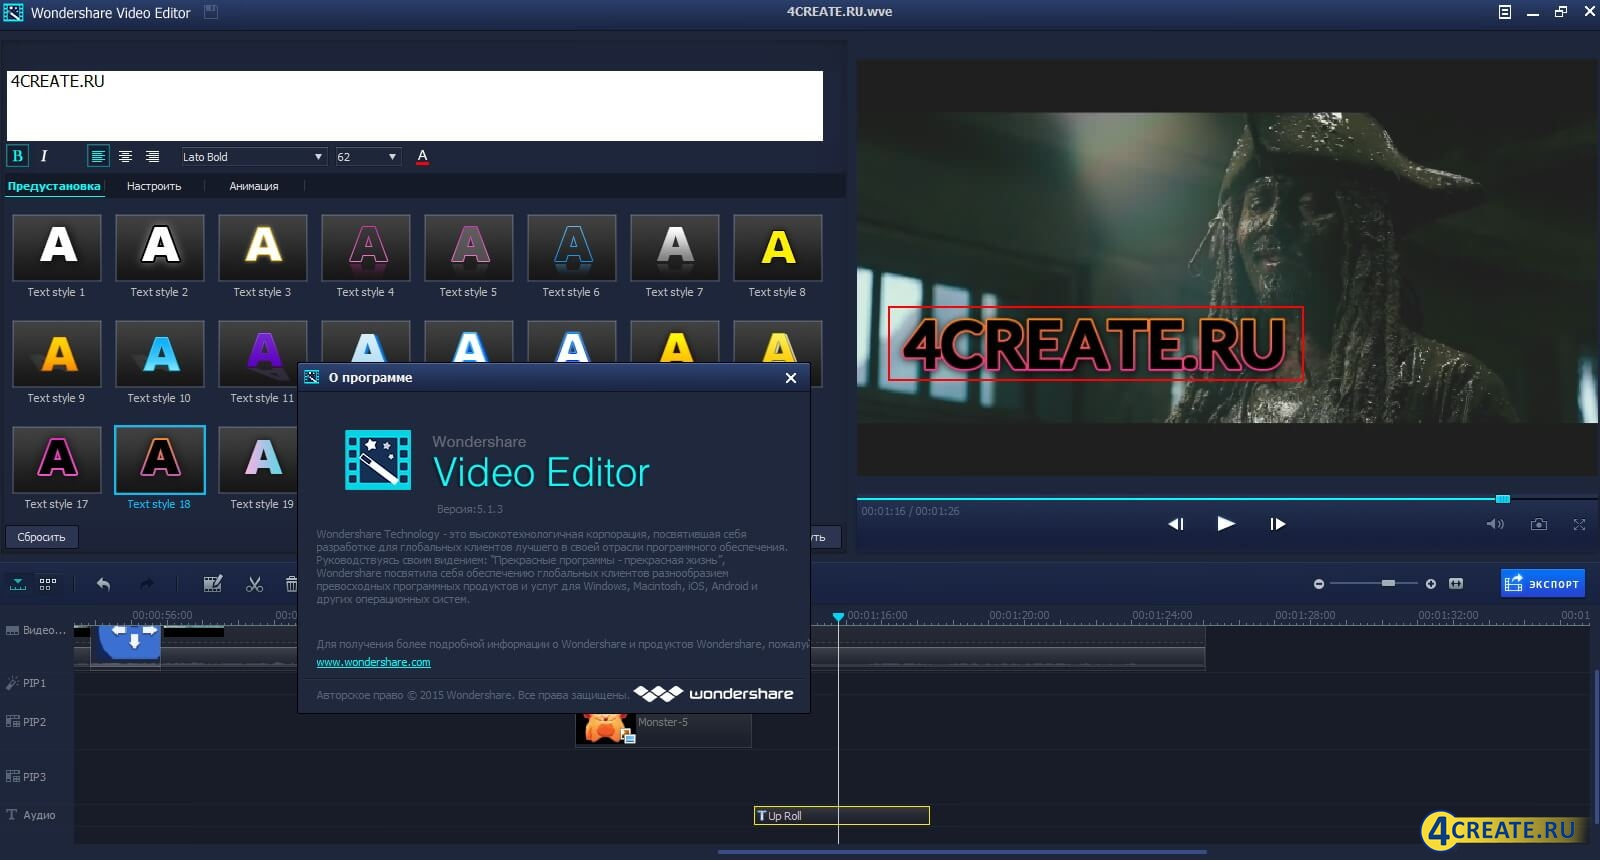 Wondershare Video Editor 5.1 (Скриншот 1)